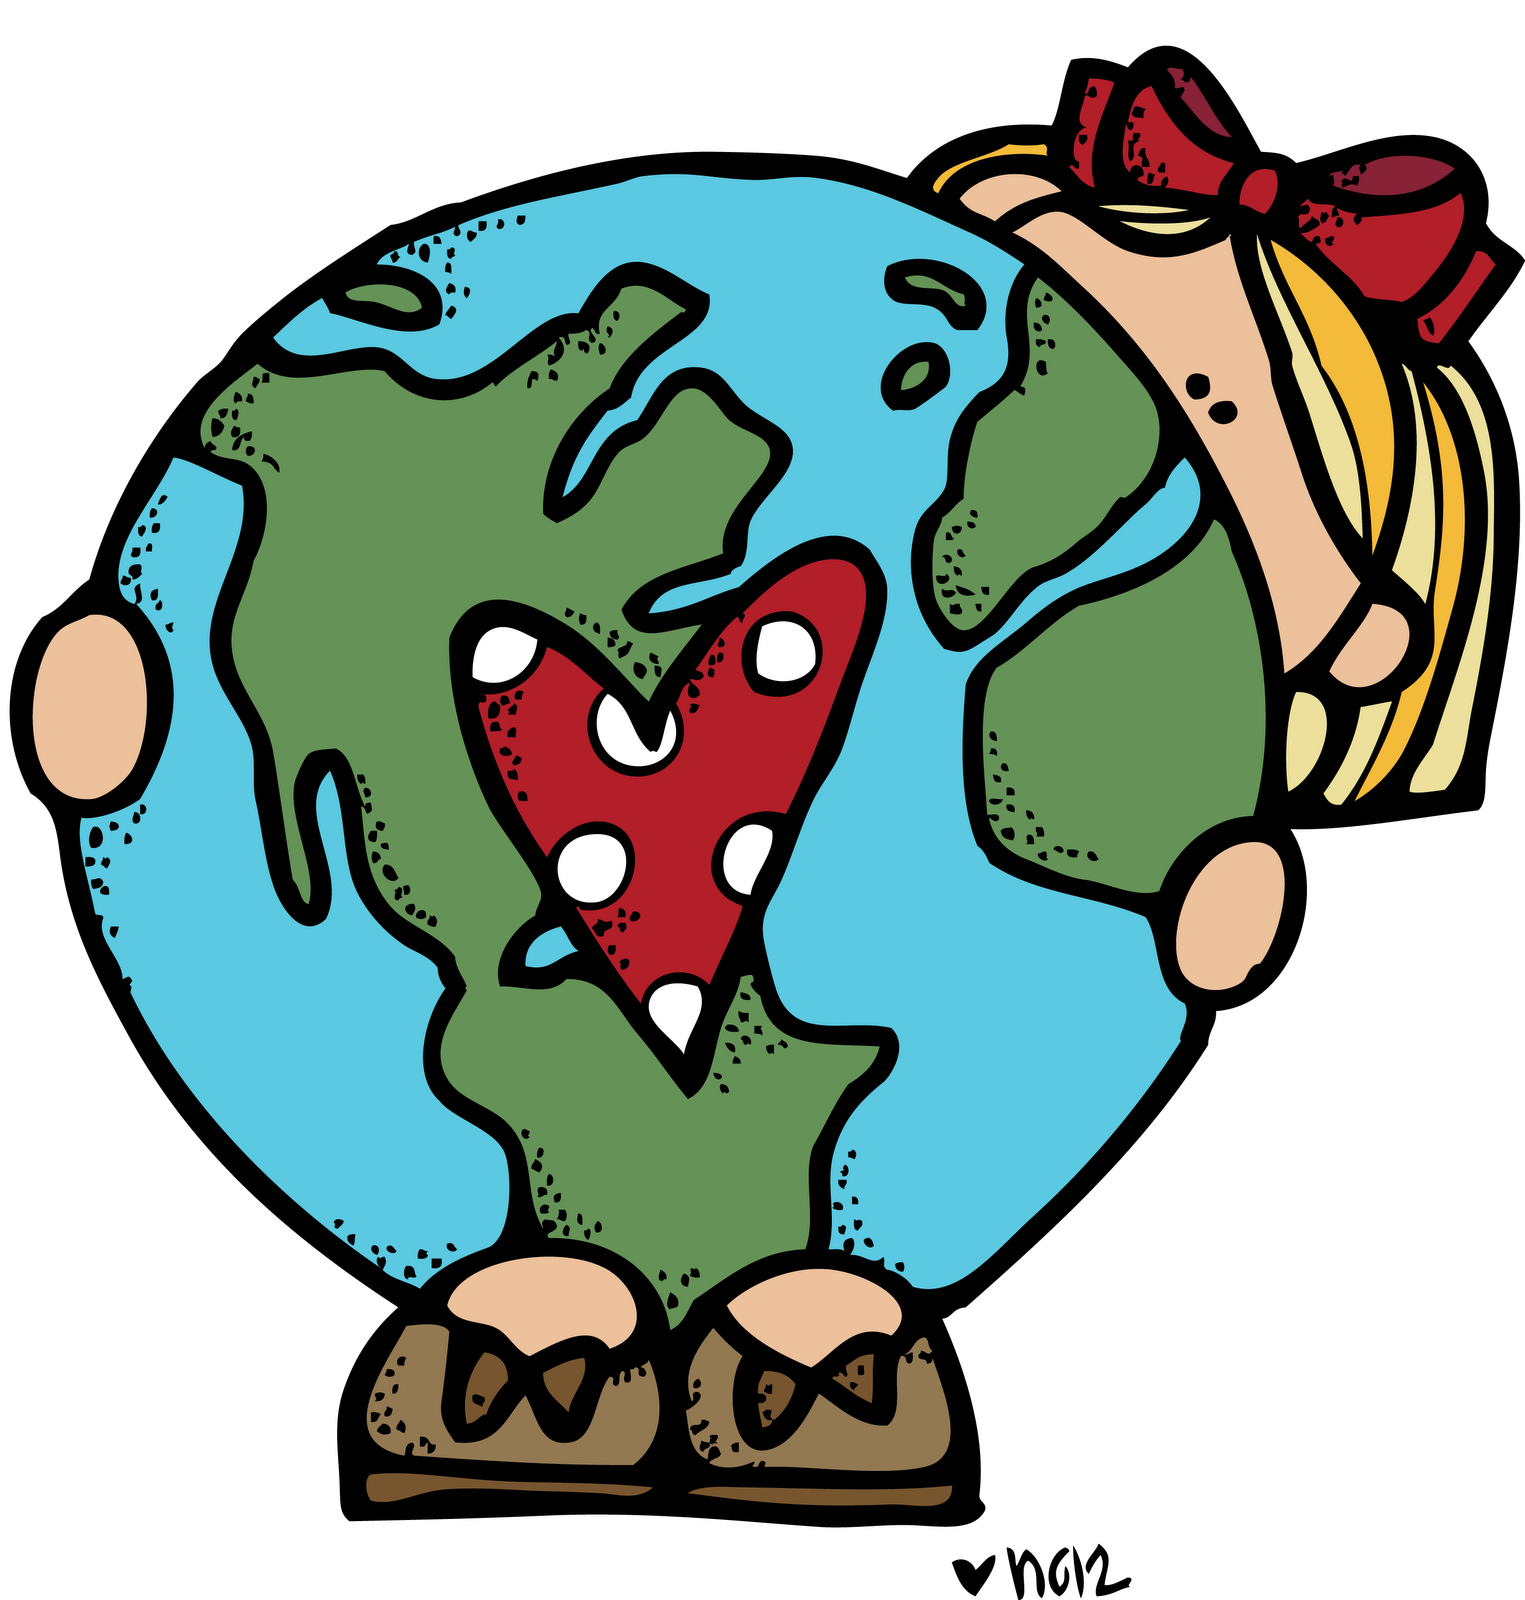 melonheadz earth day images earth day images earth day crafts art [ 1525 x 1600 Pixel ]